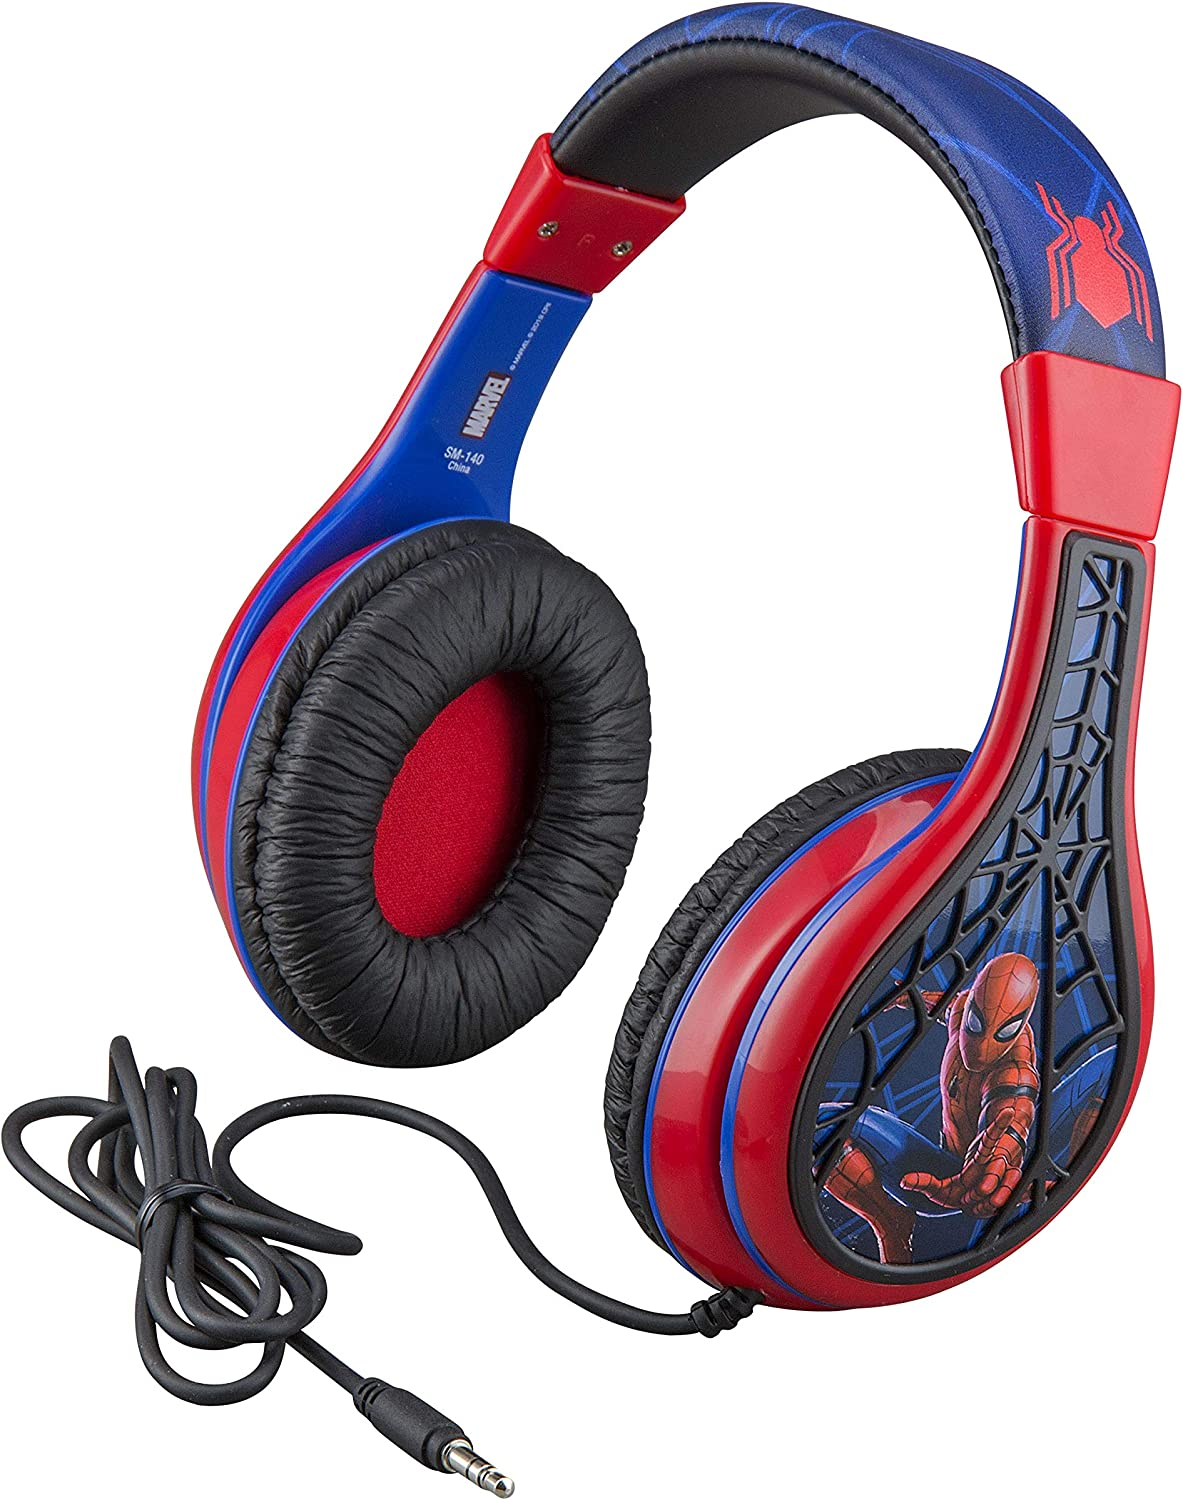 Spider Man Kids Headphones, Adjustable Headband, Stereo Sound, 3.5Mm Jack, Wired Headphones for Kids, Tangle-Free, Volume Control, Foldable, Childrens Headphones Over Ear for School Home, Travel